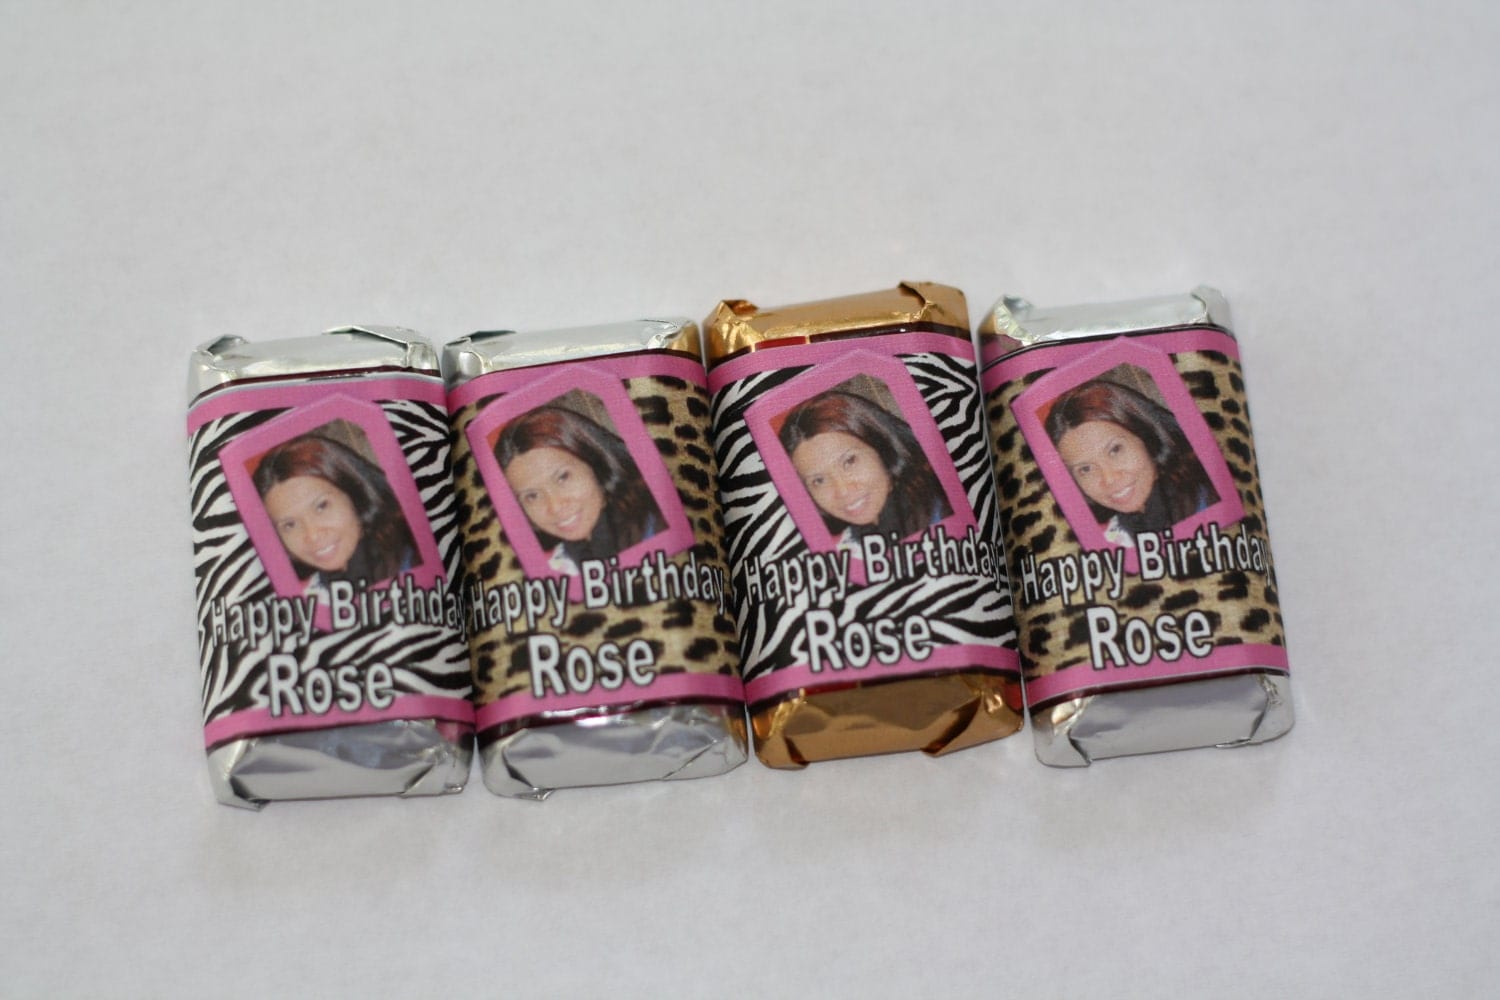 Personalized Mini Hershey Candy Bar Wrappers 100 Wrappers